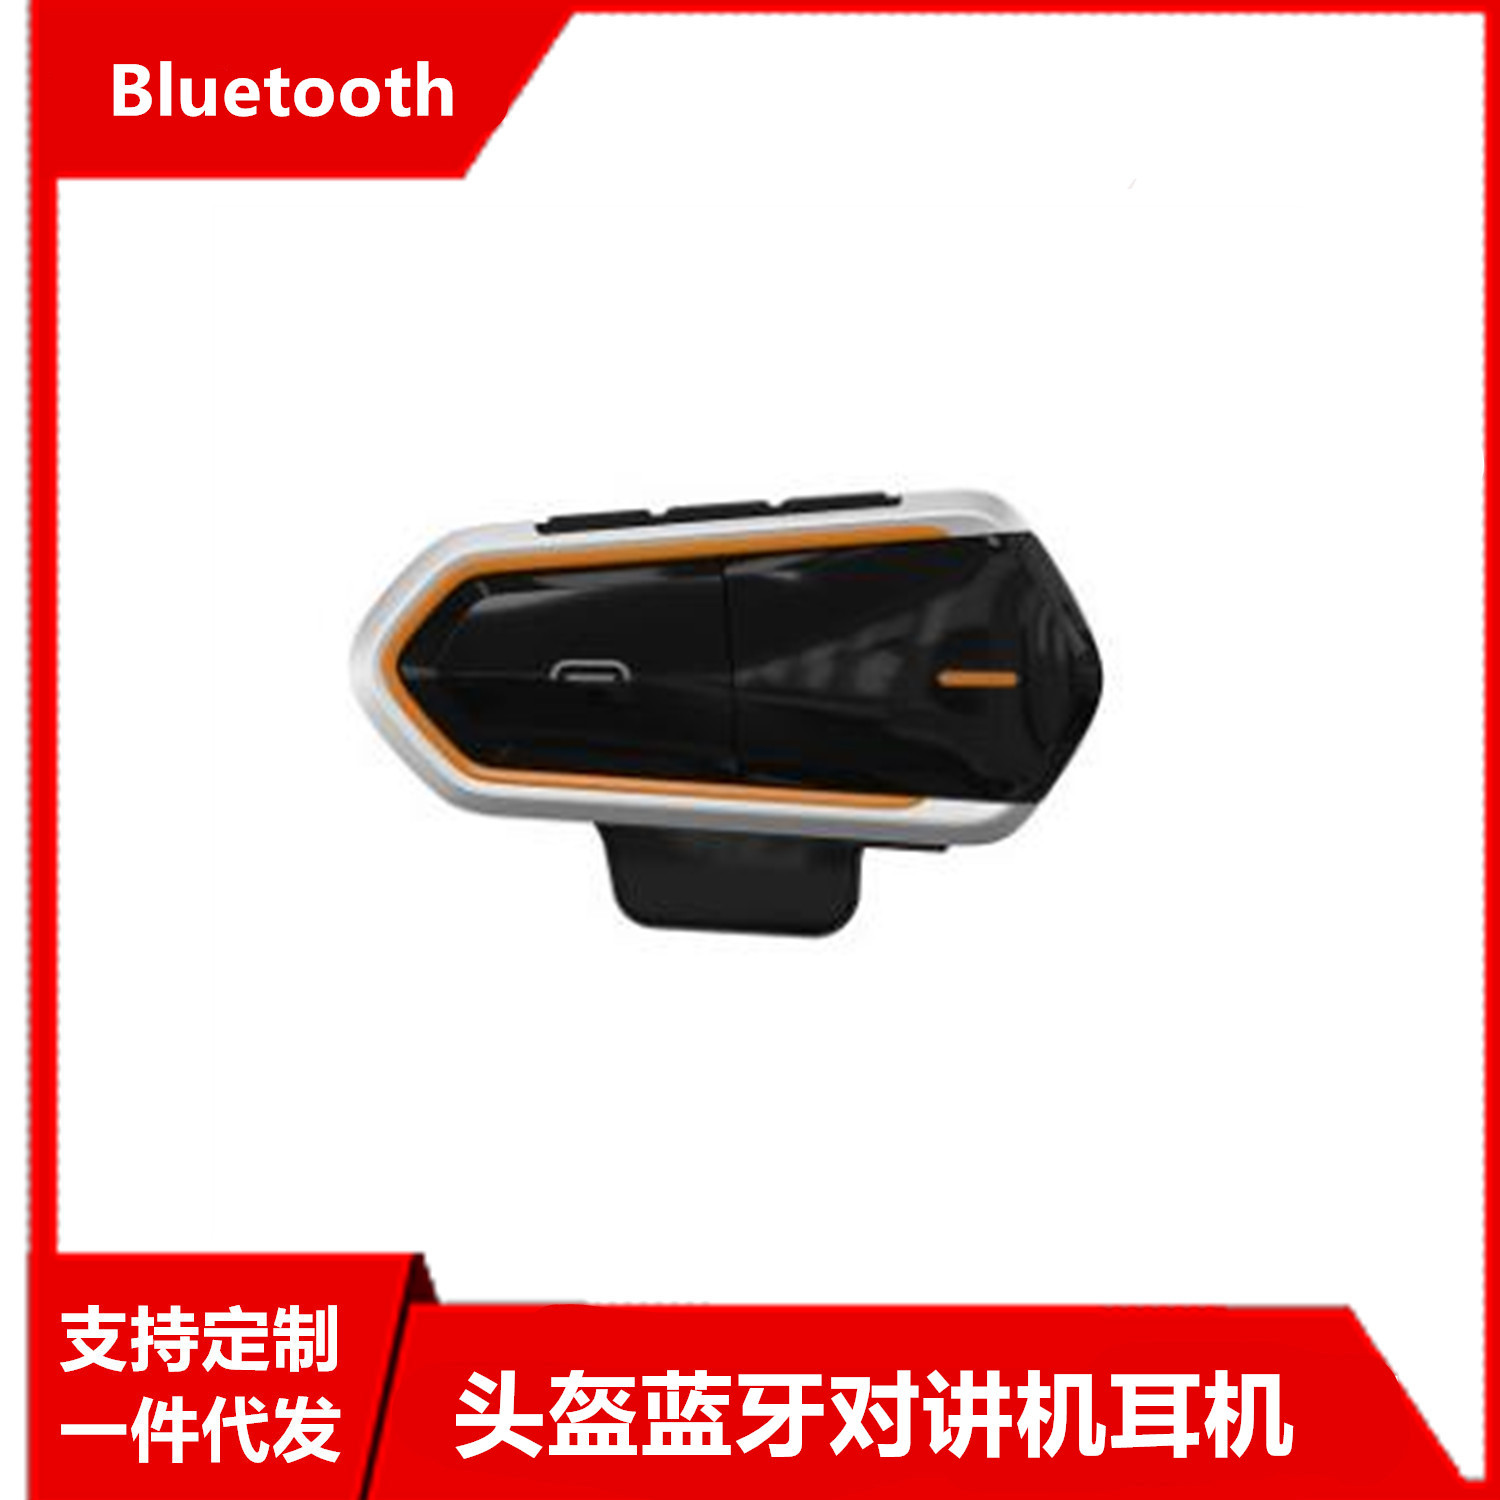 19-Motorcycle Helmet Bluetooth Walkie-talkie Brand New Illicit Model Bluetooth Wireless FM Walkie-talkie